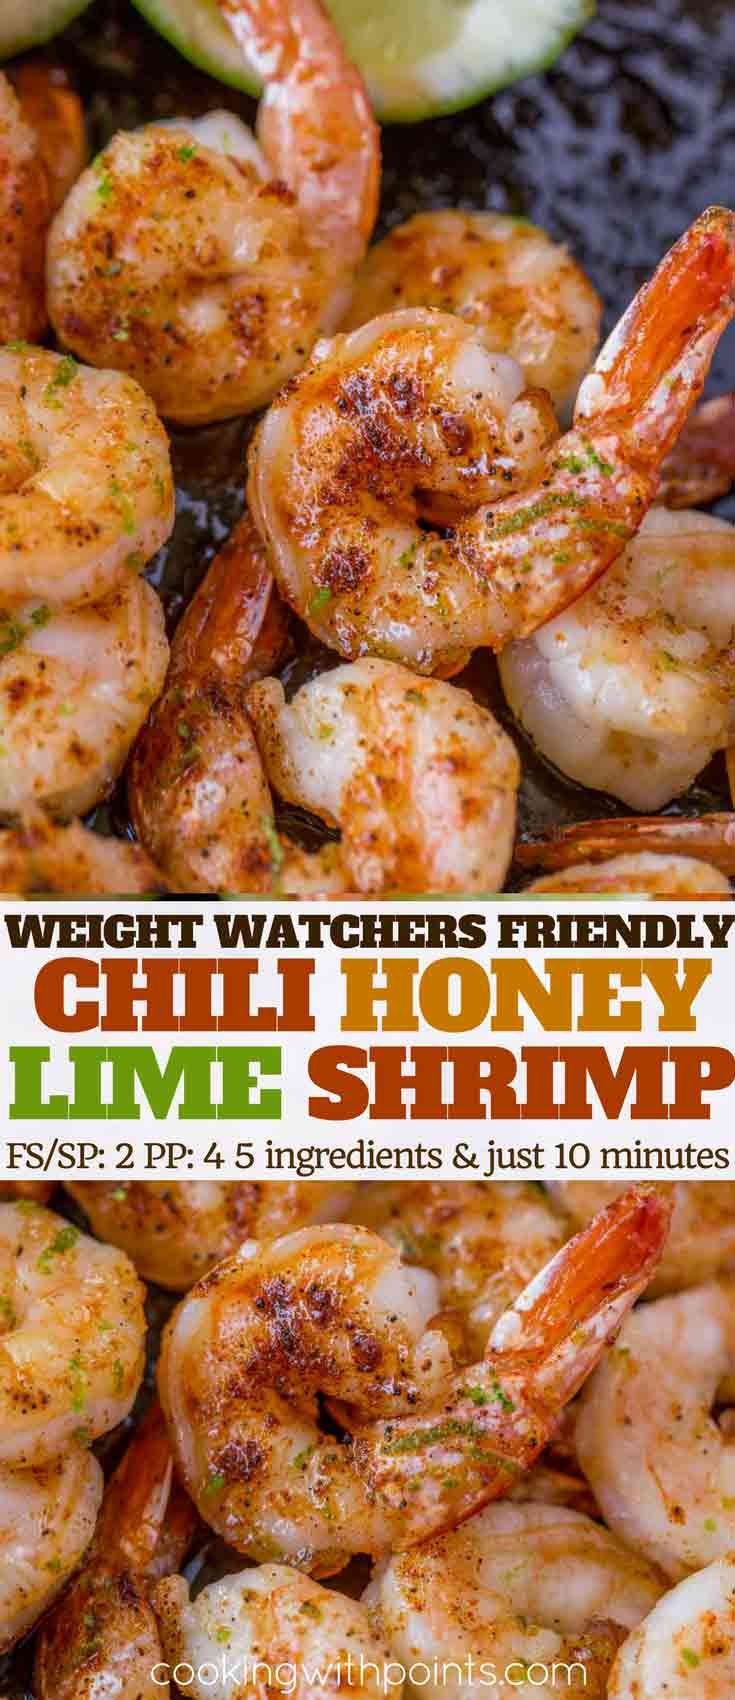 Chili Honey Lime Shrimp with just five ingredients is a quick and easy main dish, salad topping, taco filling or more with just 2 Weight Watchers smart points per serving.